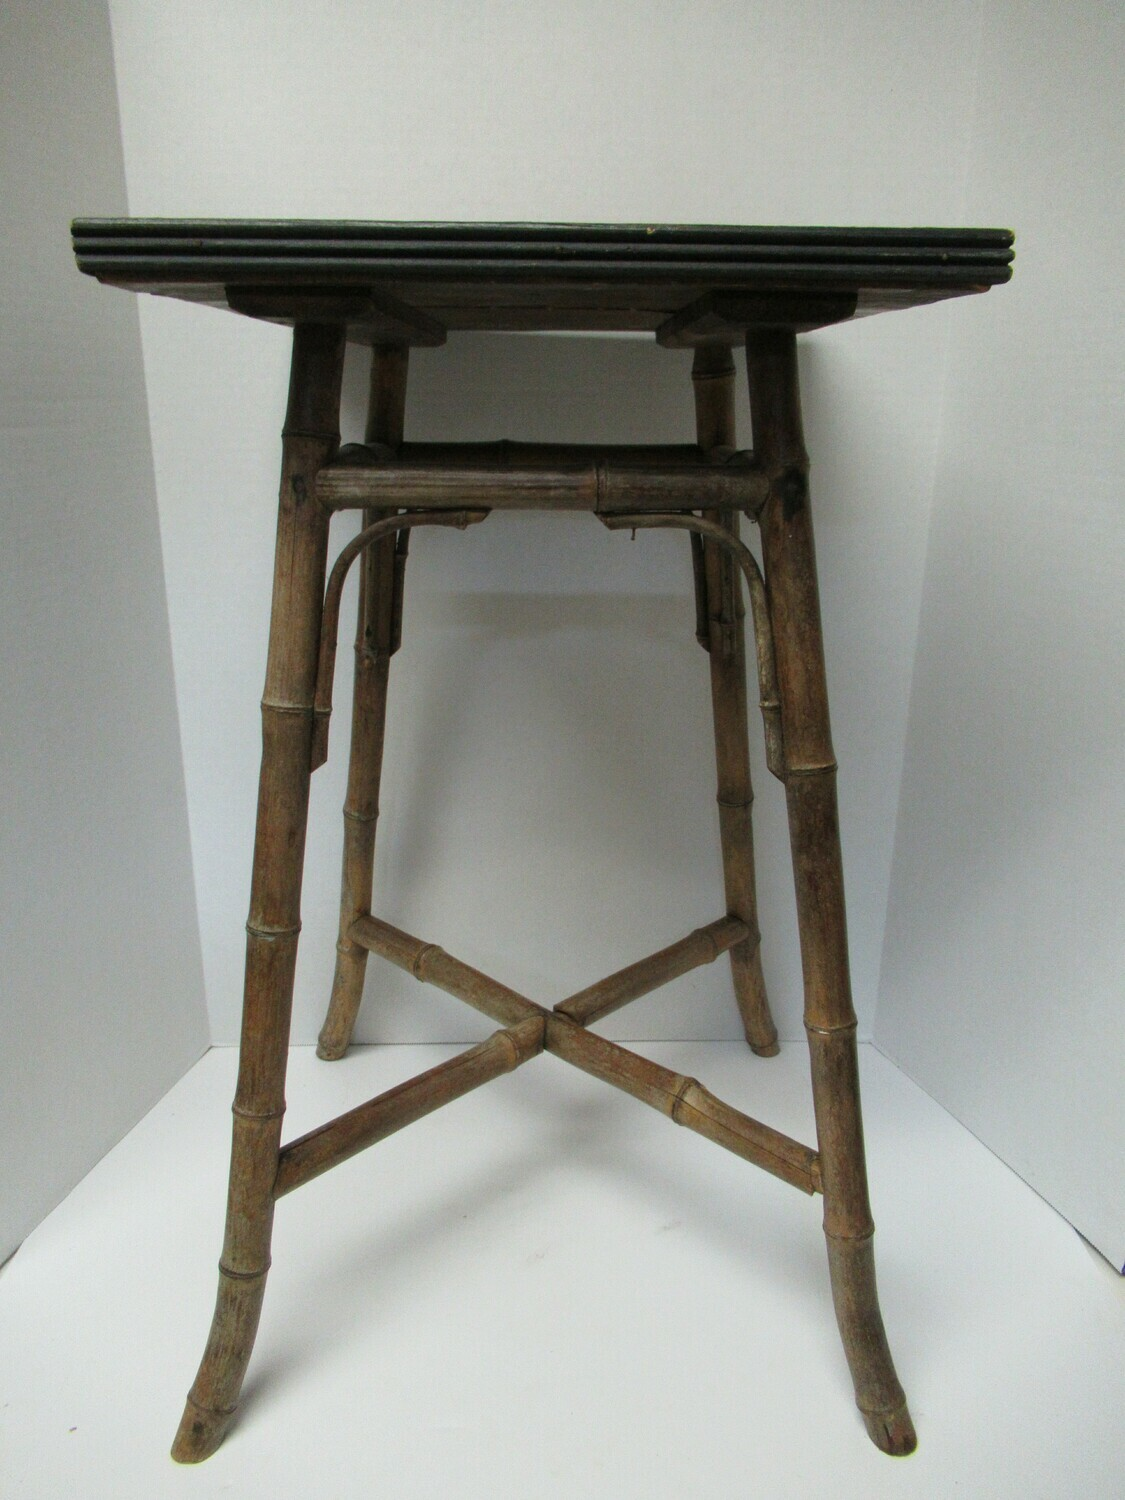 Tile Top Table with Bamboo Legs